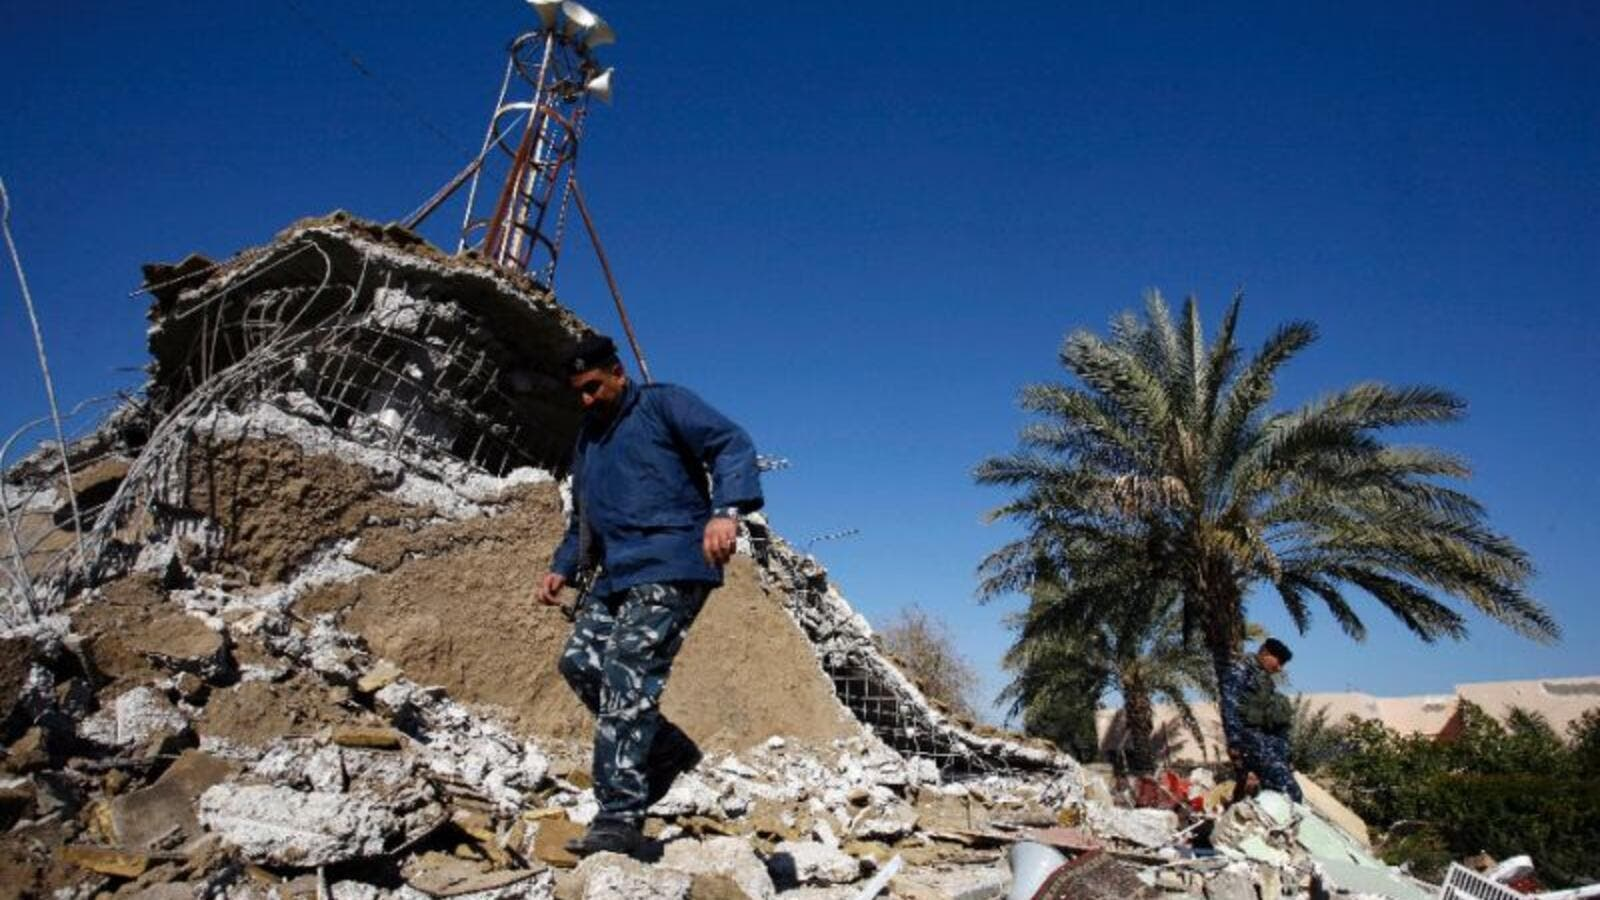 A man surveys the debris of the al-Fateh mosque, bombed by militants in Iraq earlier this year. (AFP/File)